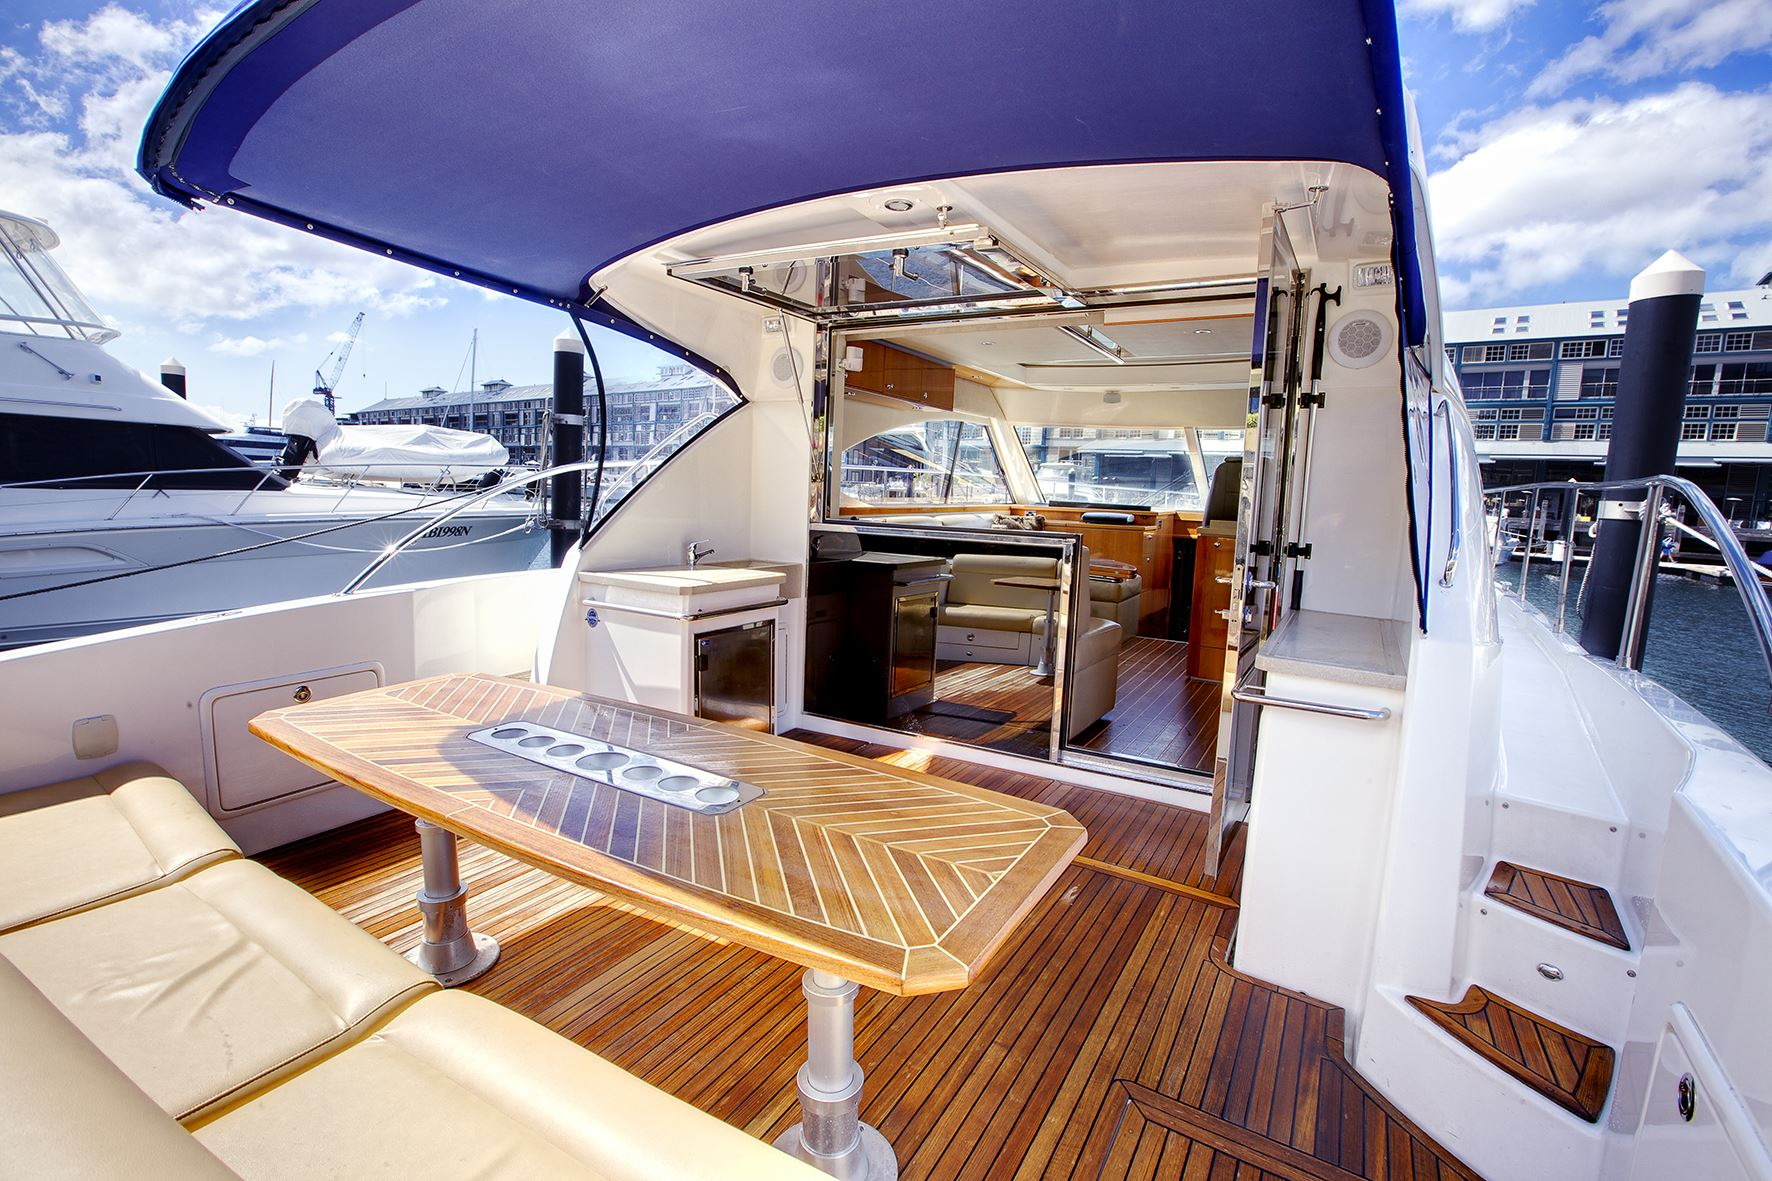 Seaduction-Sydney-Harbour-VIP-Charters-deck